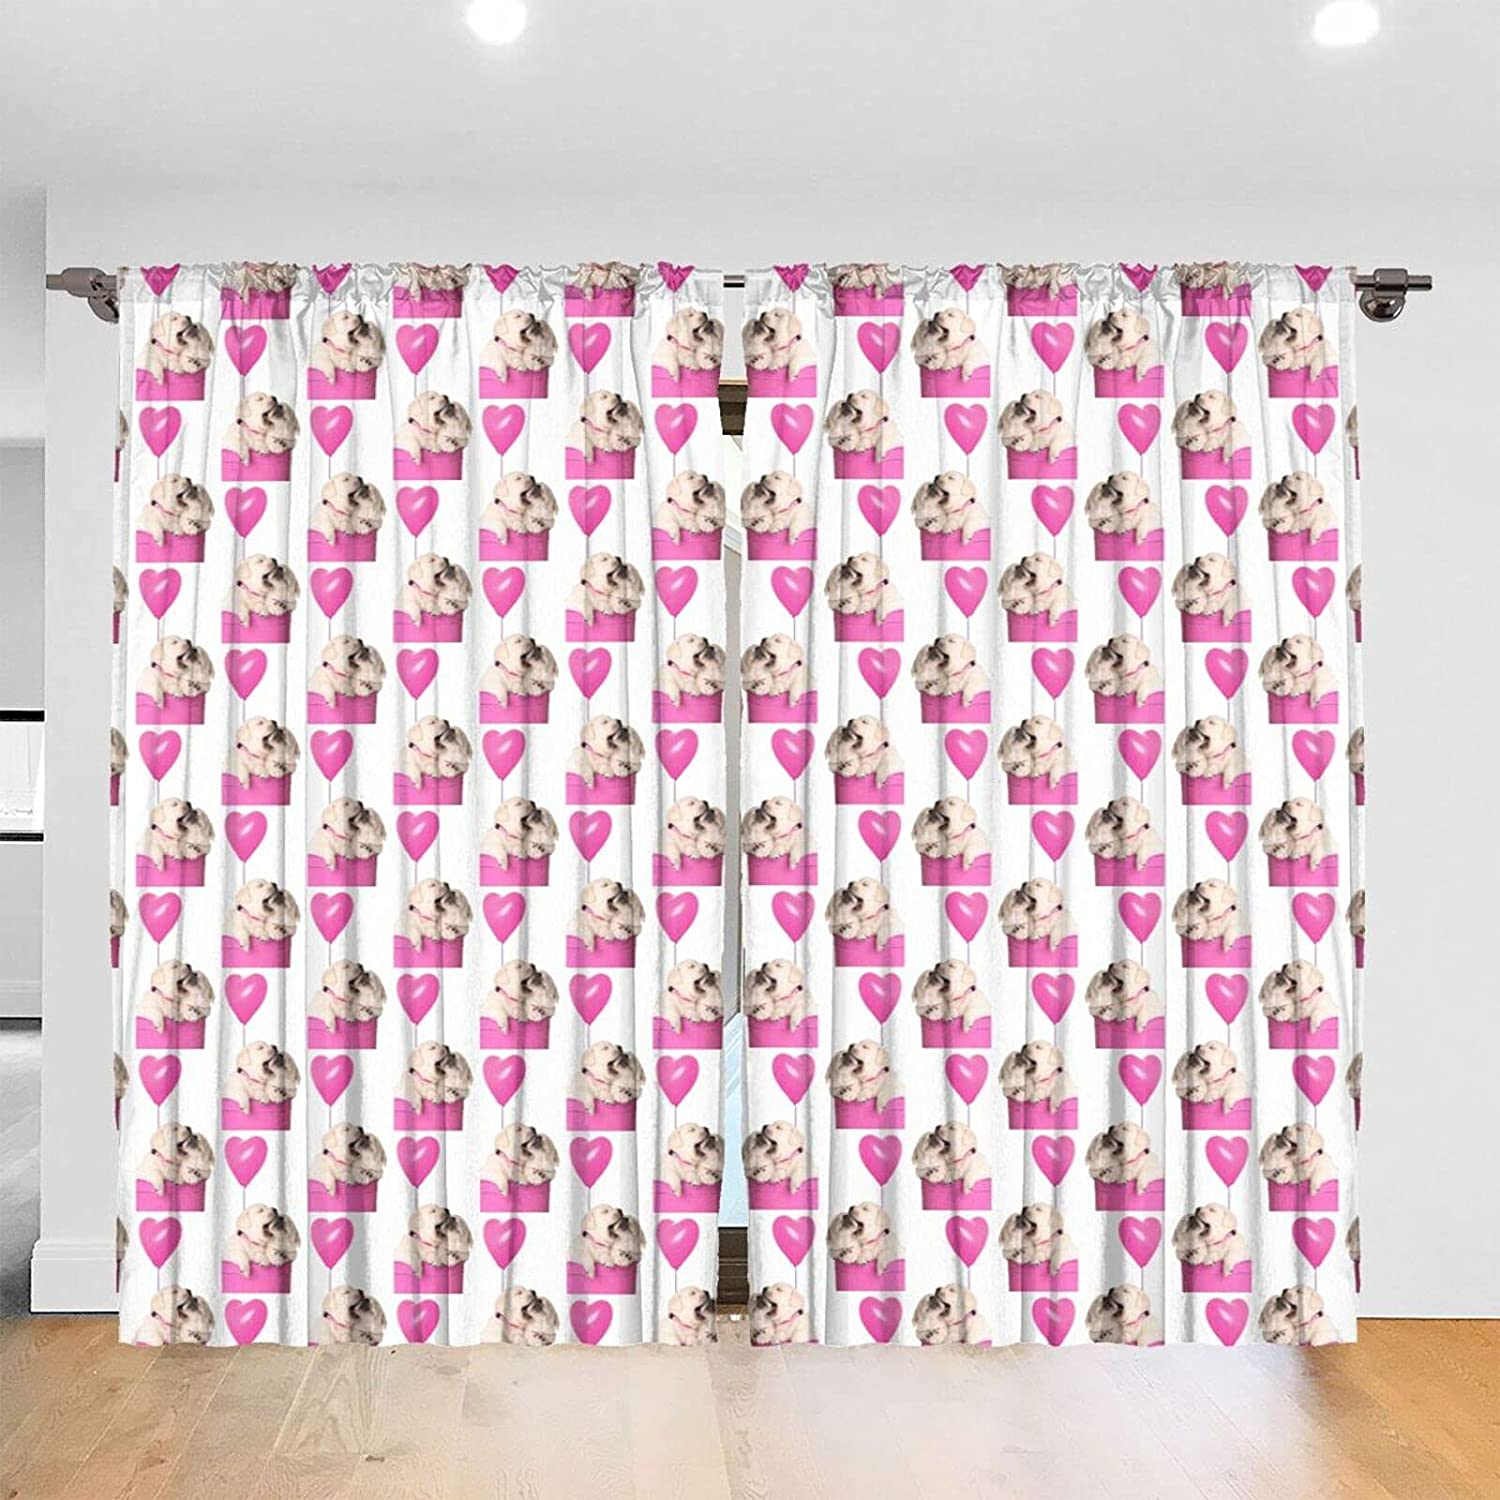 Cute Ranking integrated 1st place Puppy Print Blackout Curtains for Long Bedroom Inch X supreme 84 52